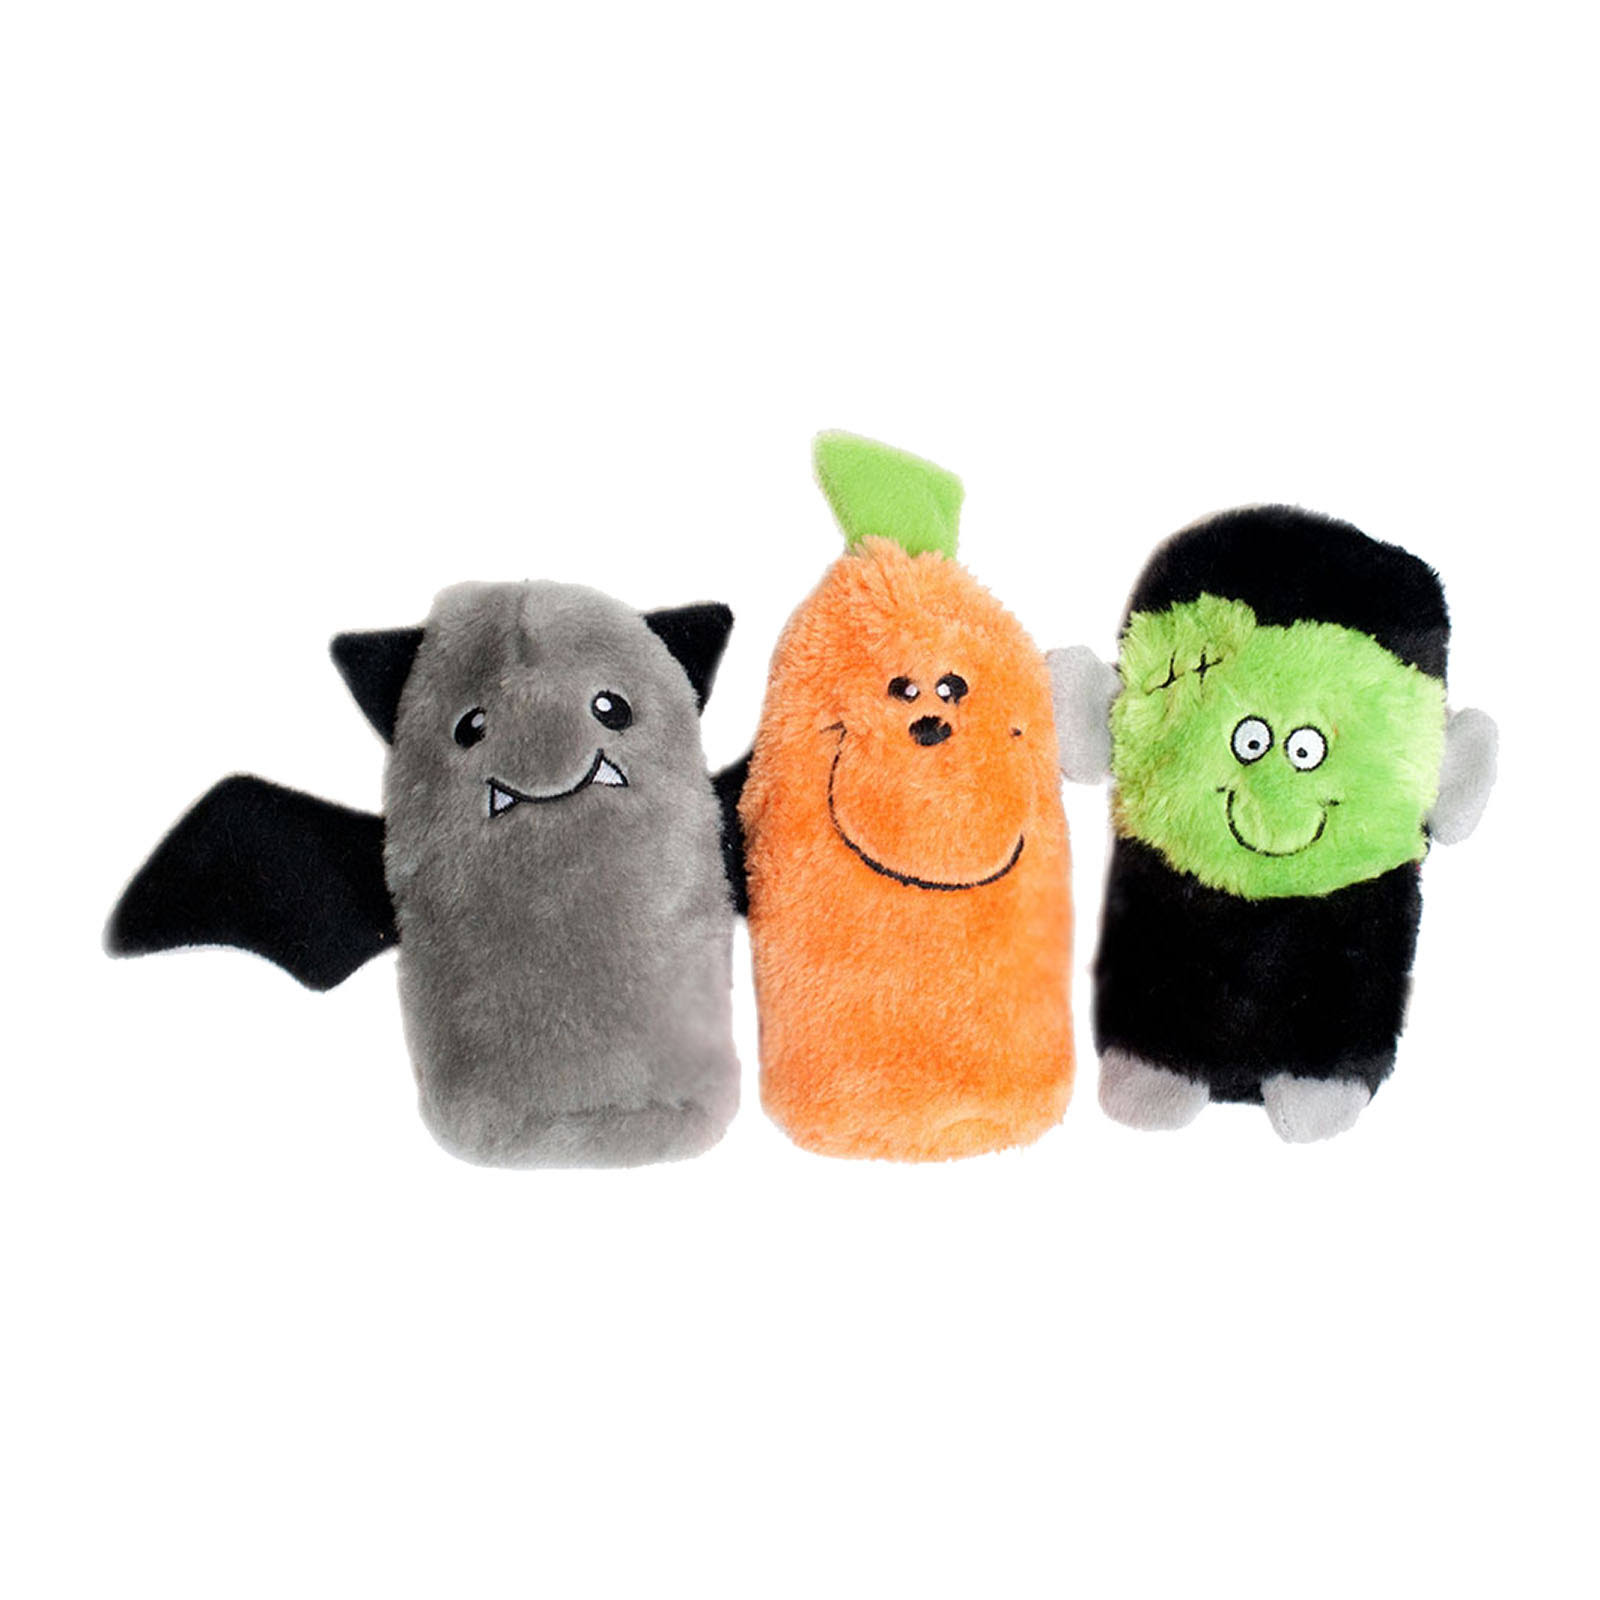 ZippyPaws Halloween Squeakie Buddies Squeaky Plush Dog Toy - 3pcs, No Stuffing